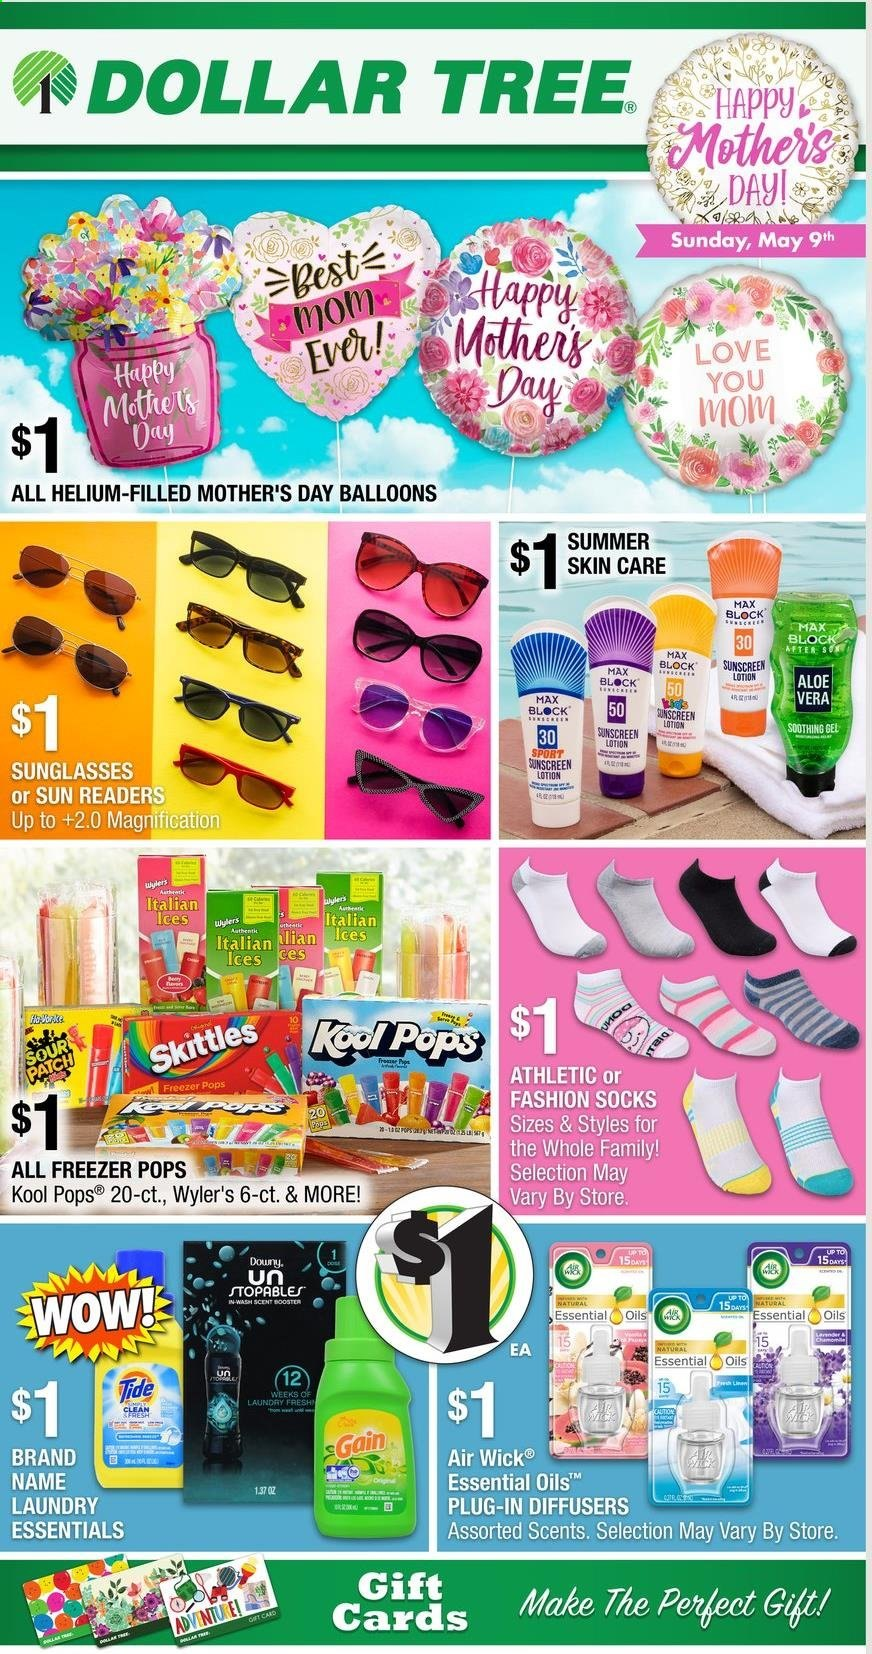 Dollar Tree Flyer - 04.25.2021 - 05.09.2021 - Sales products - Skittles, sour patch, Gain, Tide, body lotion, sunscreen lotion, balloons, diffuser, Air Wick, essential oils, socks, essentials. Page 1.